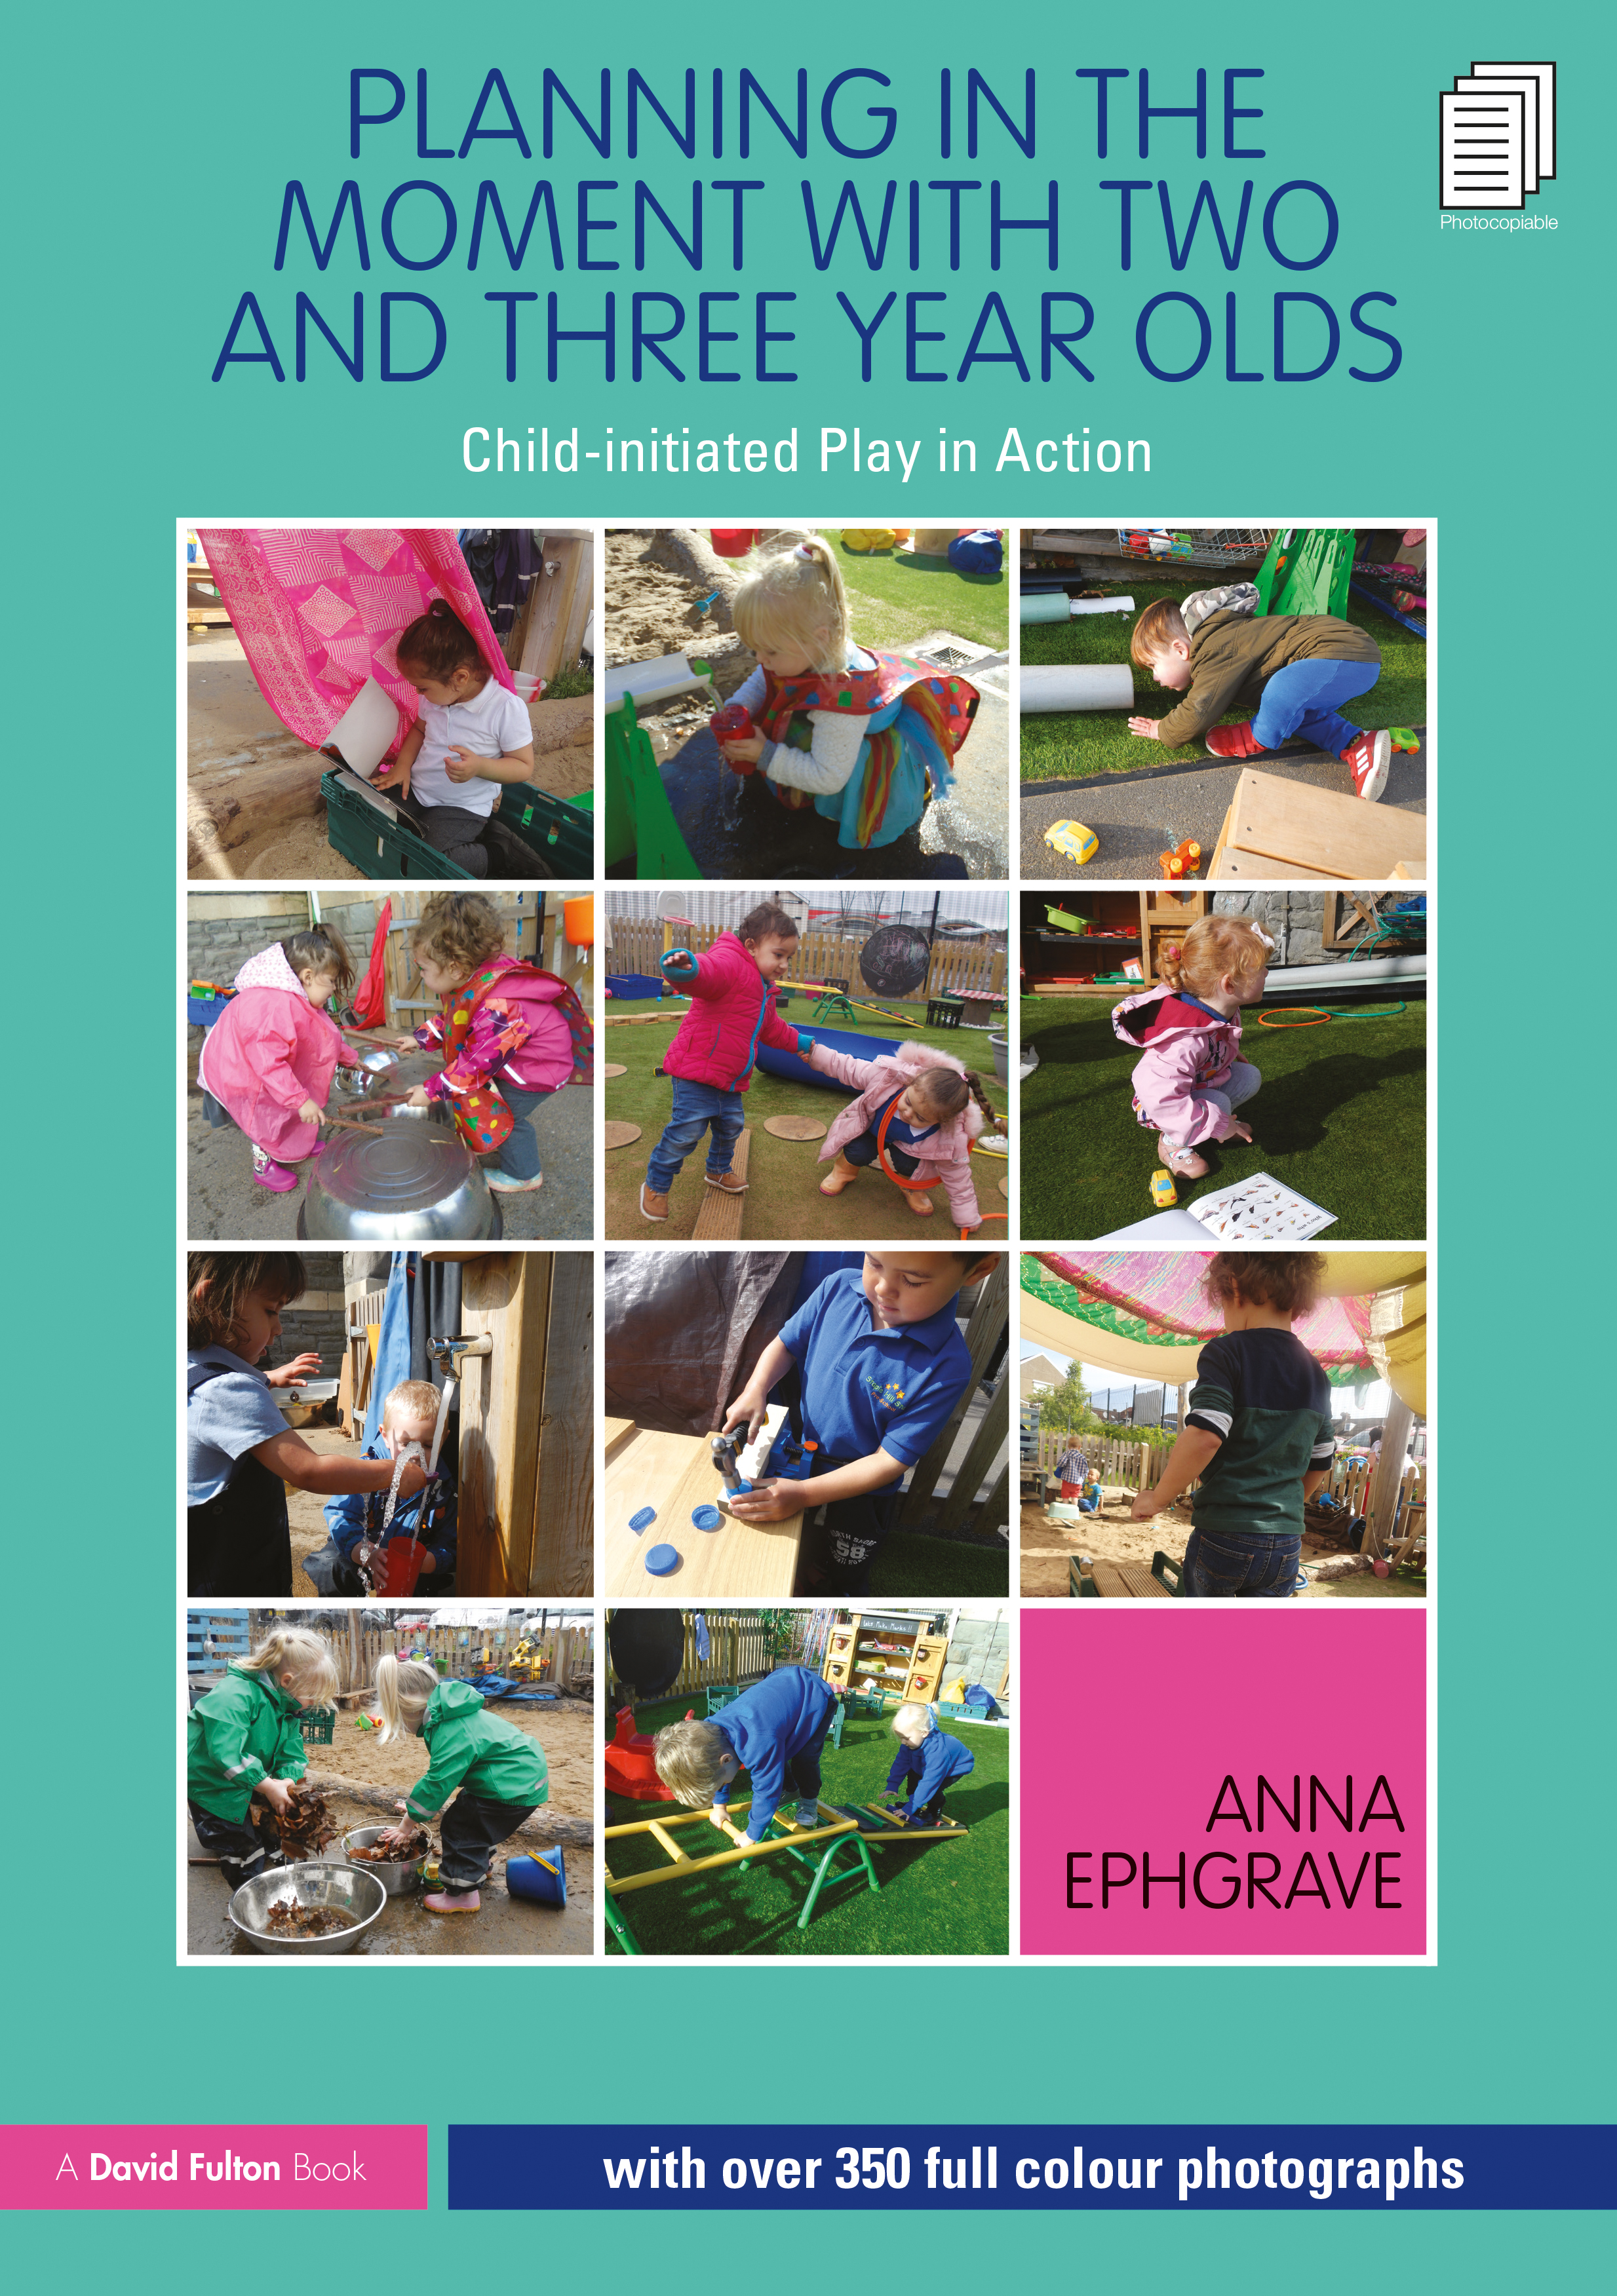 Planning in the Moment with Two and Three Year Olds: Child-initiated Play in Action book cover